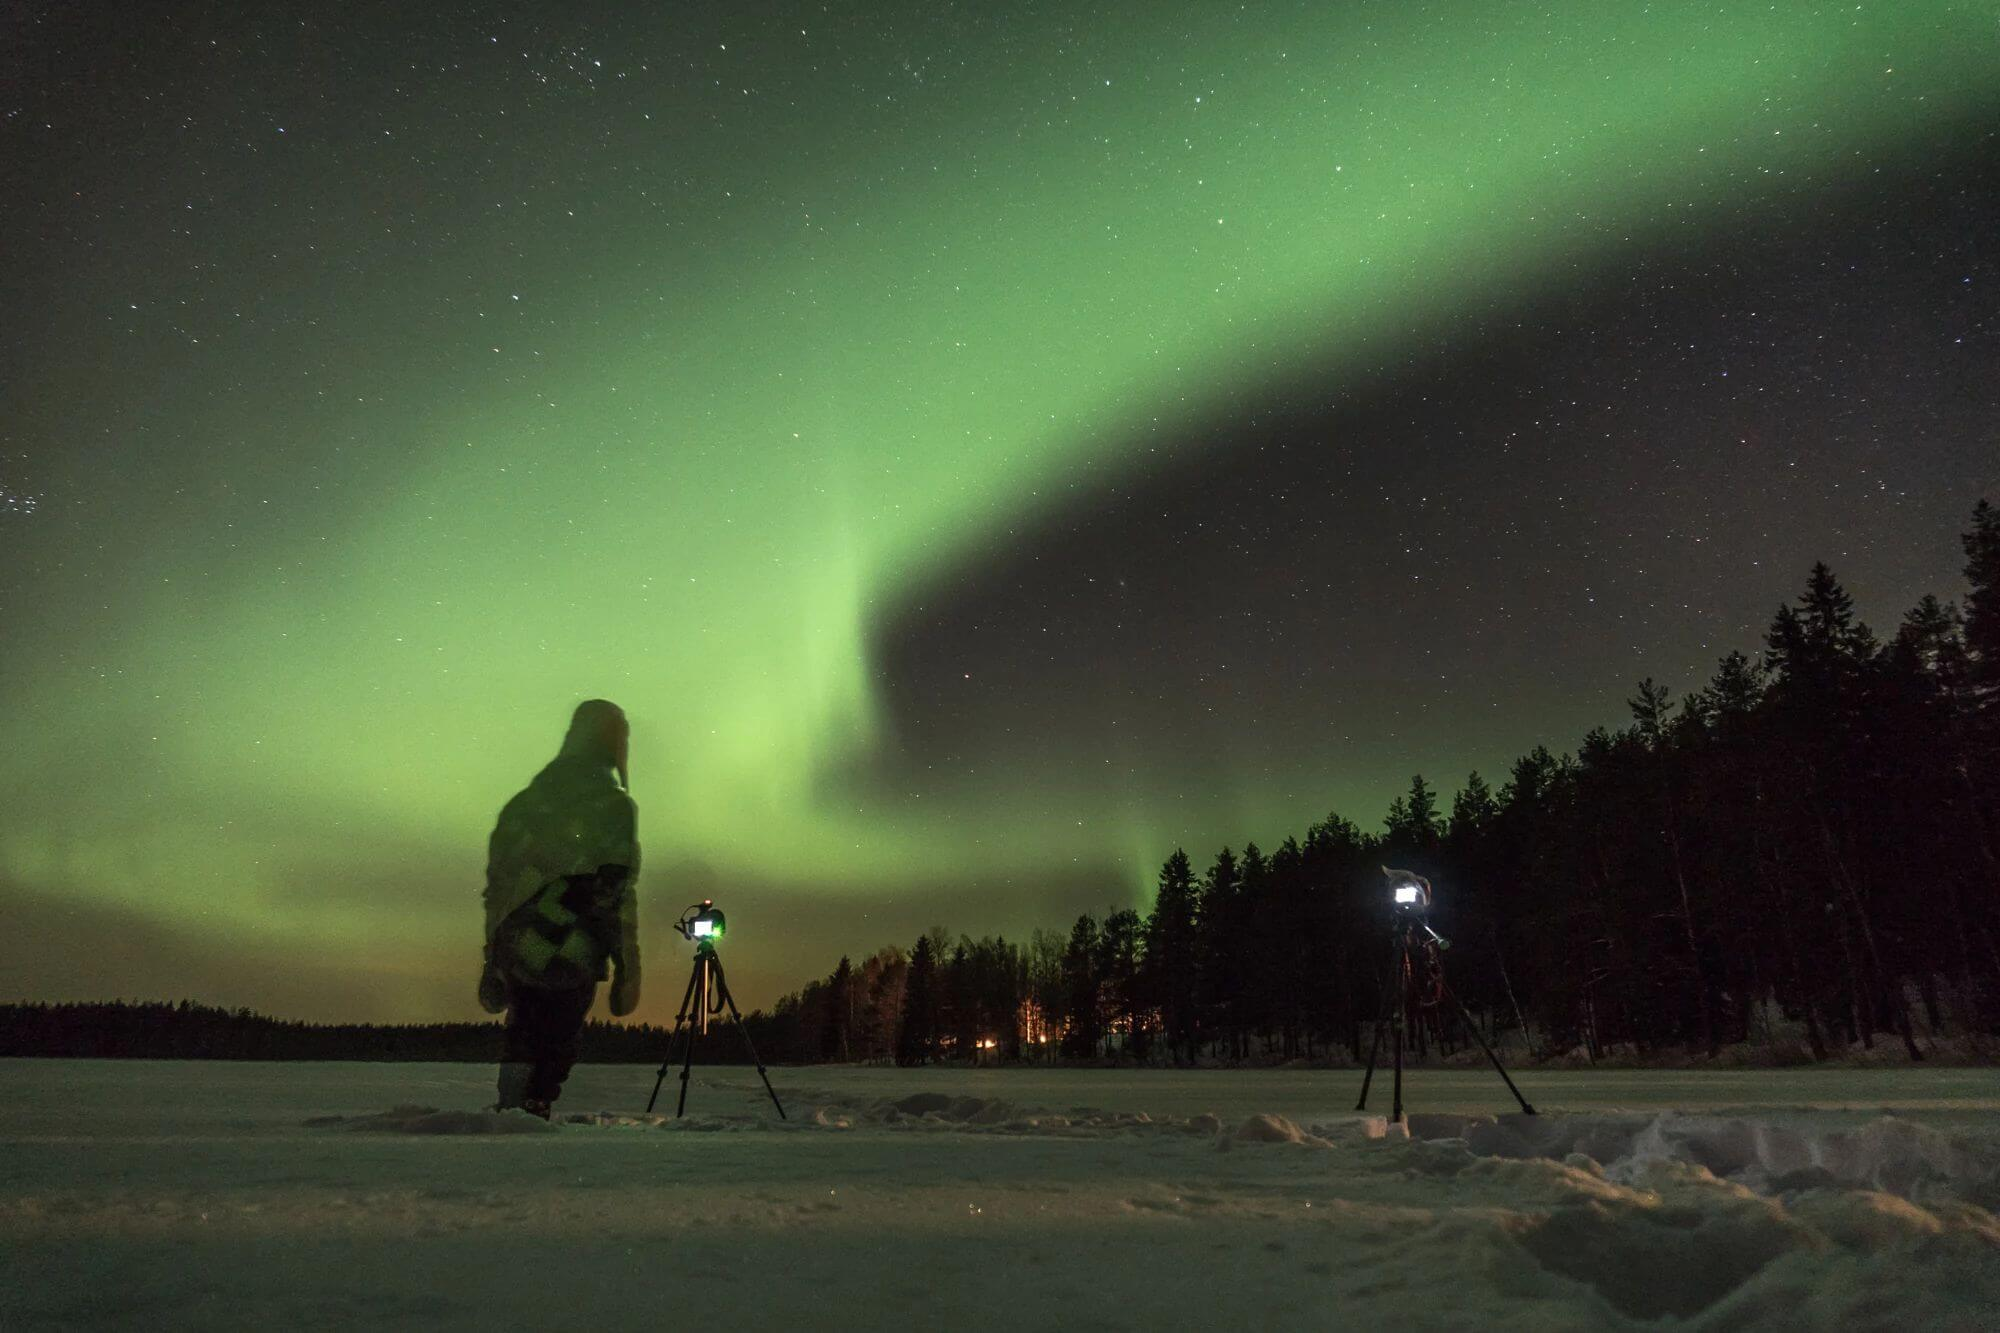 Chase the perfect photo of the Northern Lights with an experienced guide. You'll get all the equipment you need, help setting up and using the camera, and transfers to 2-3 picturesque locations.